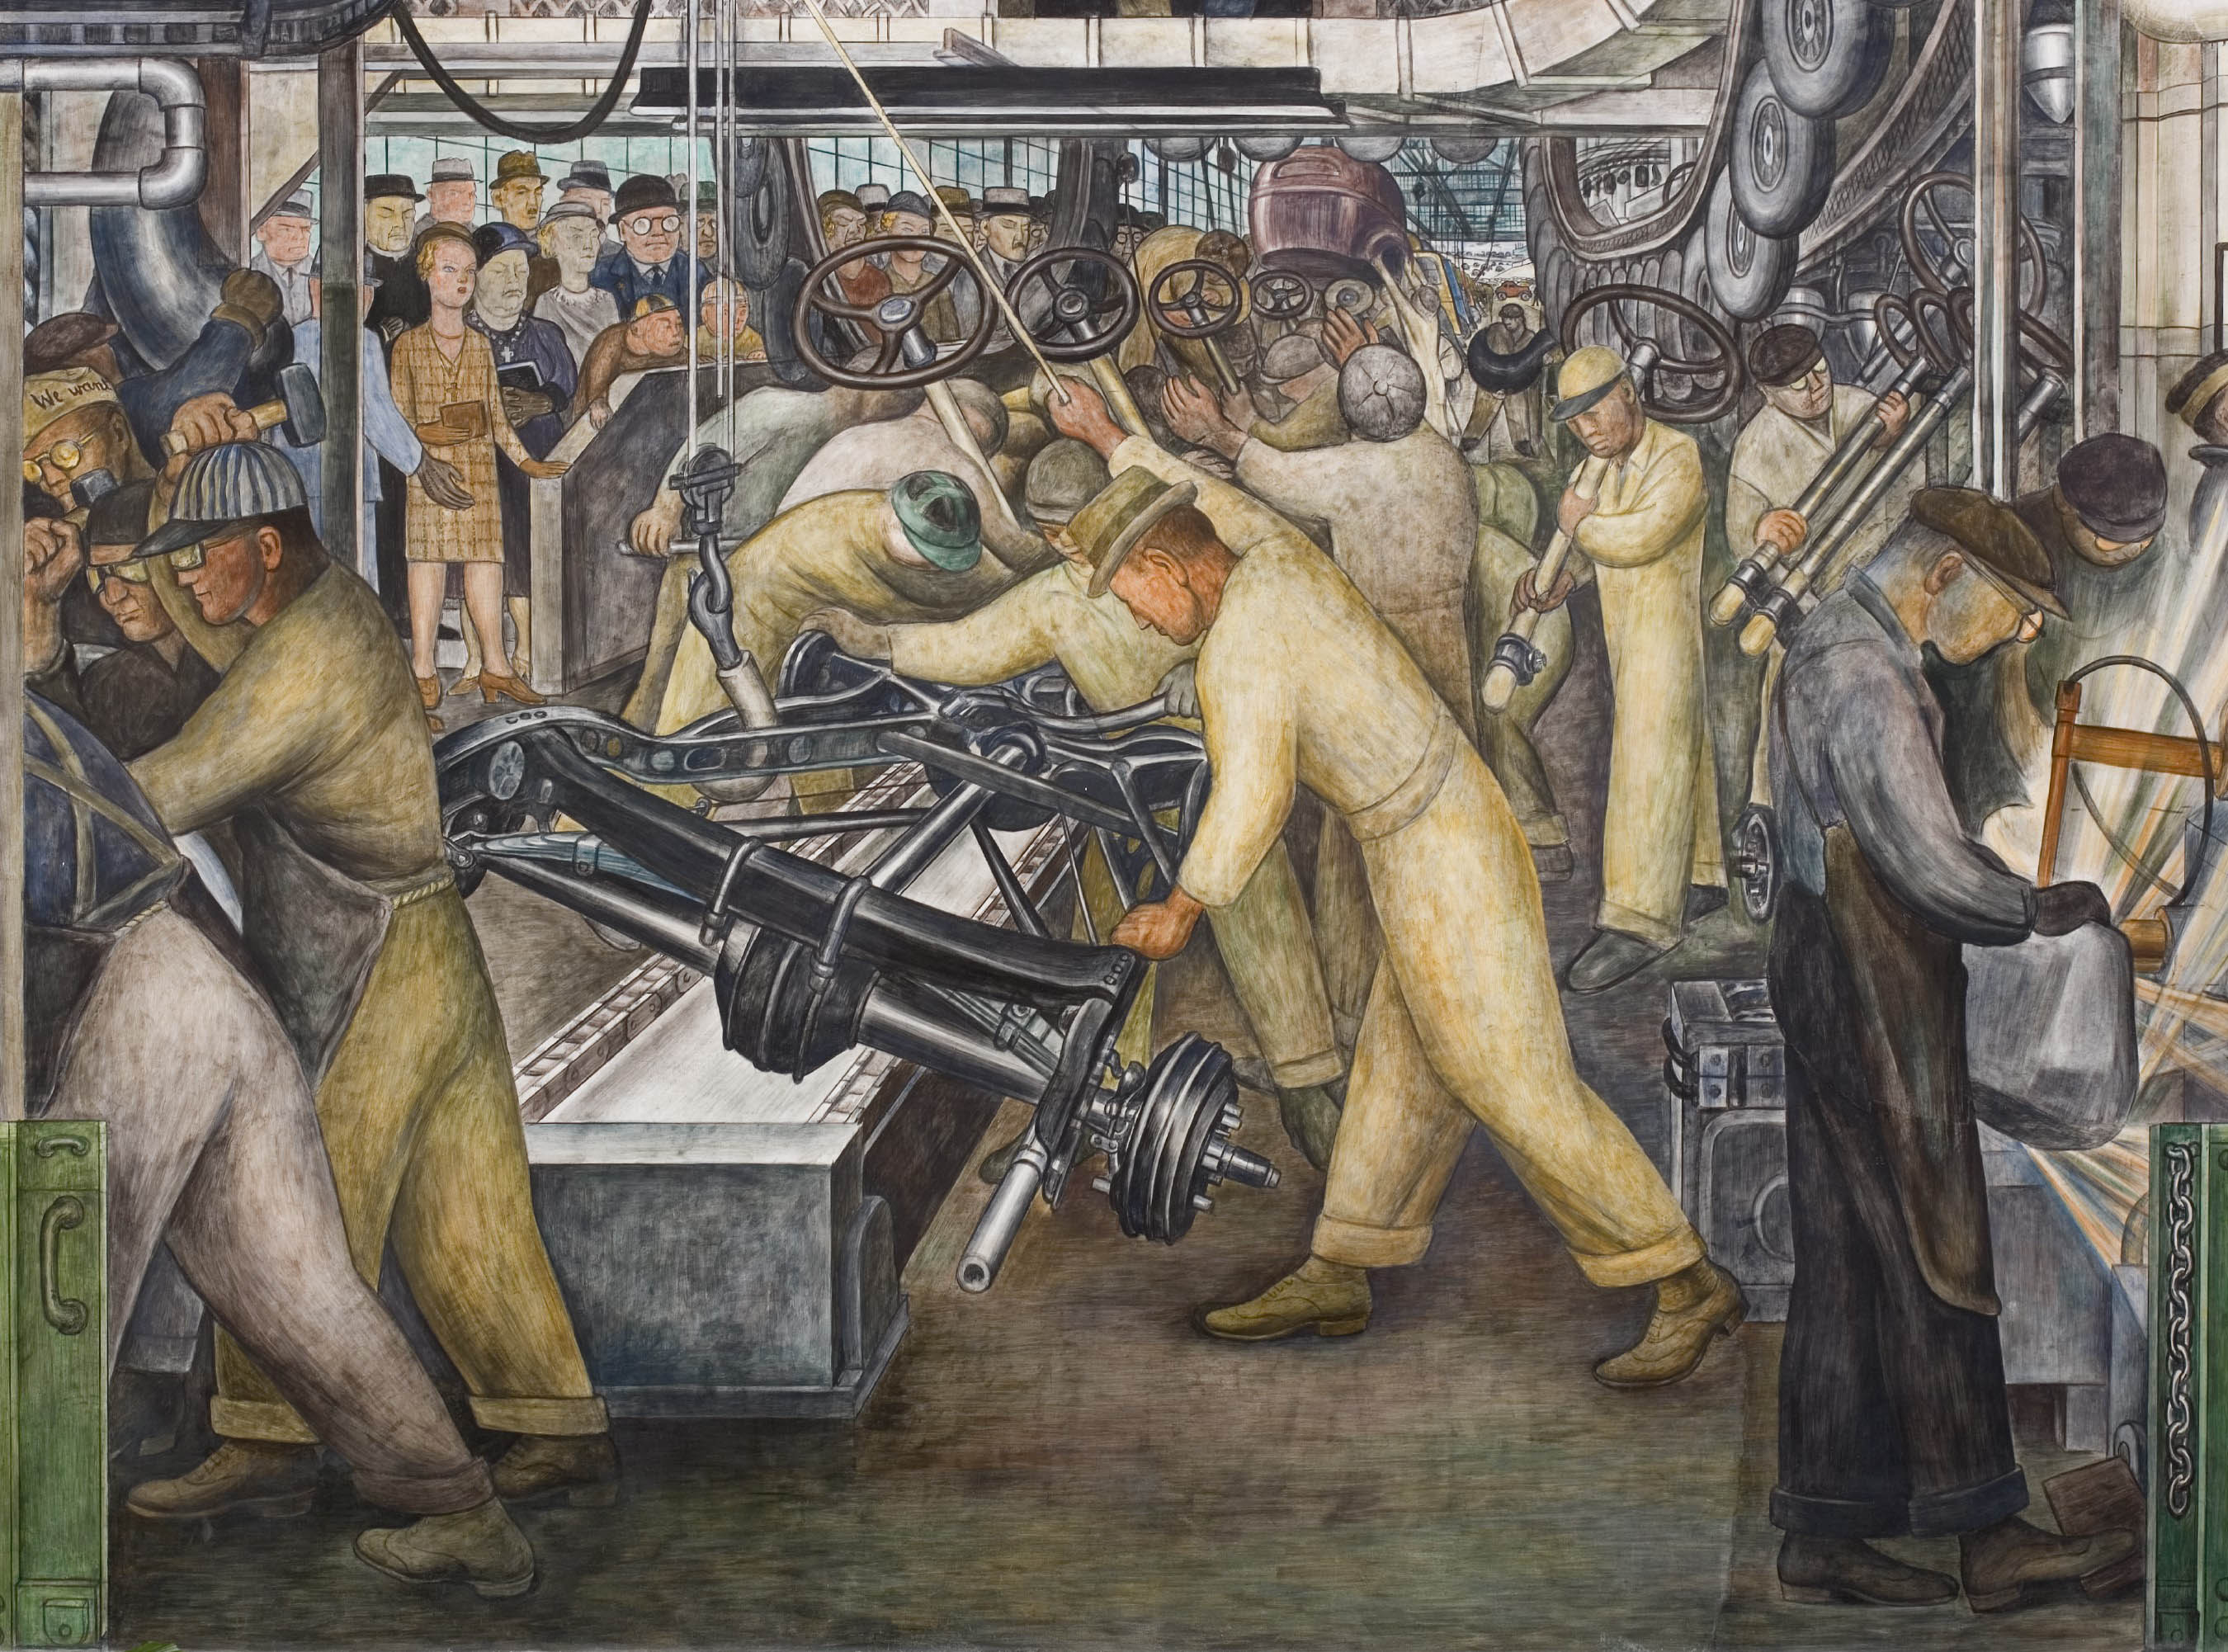 Diego Rivera's Detroit Industry - Image Journal